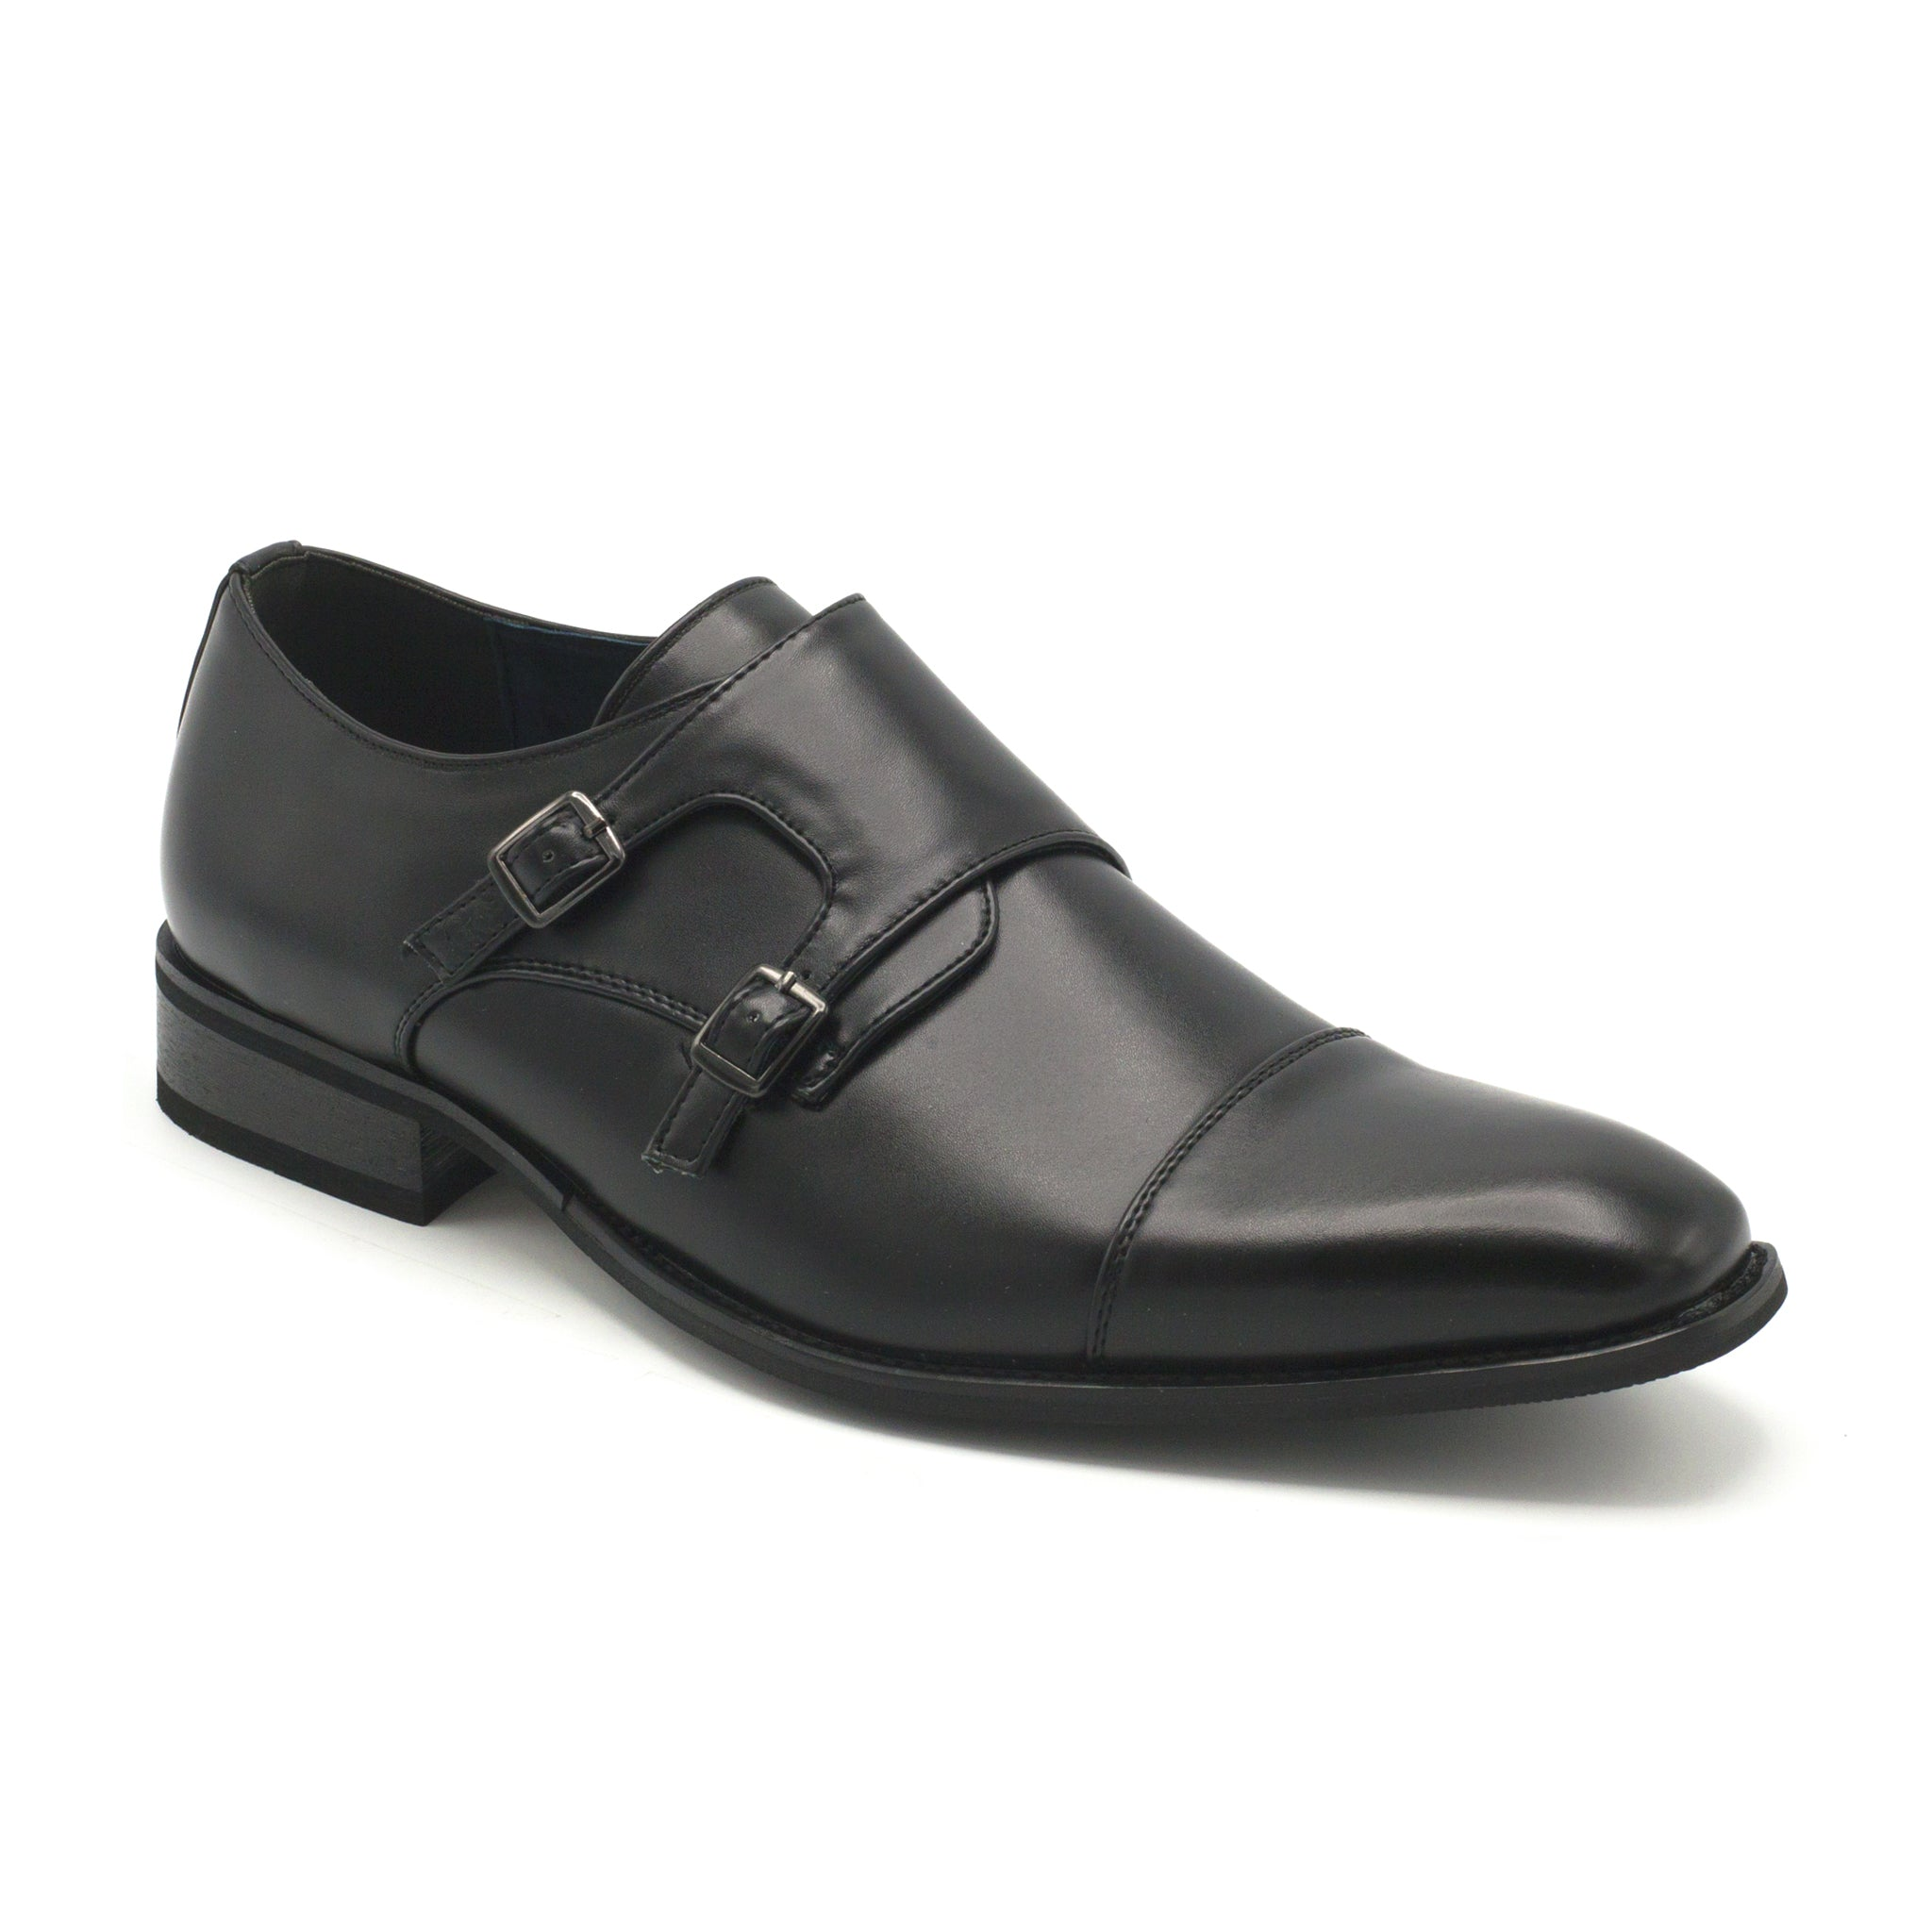 UV SIGNATURE MONK STRAP BLACK